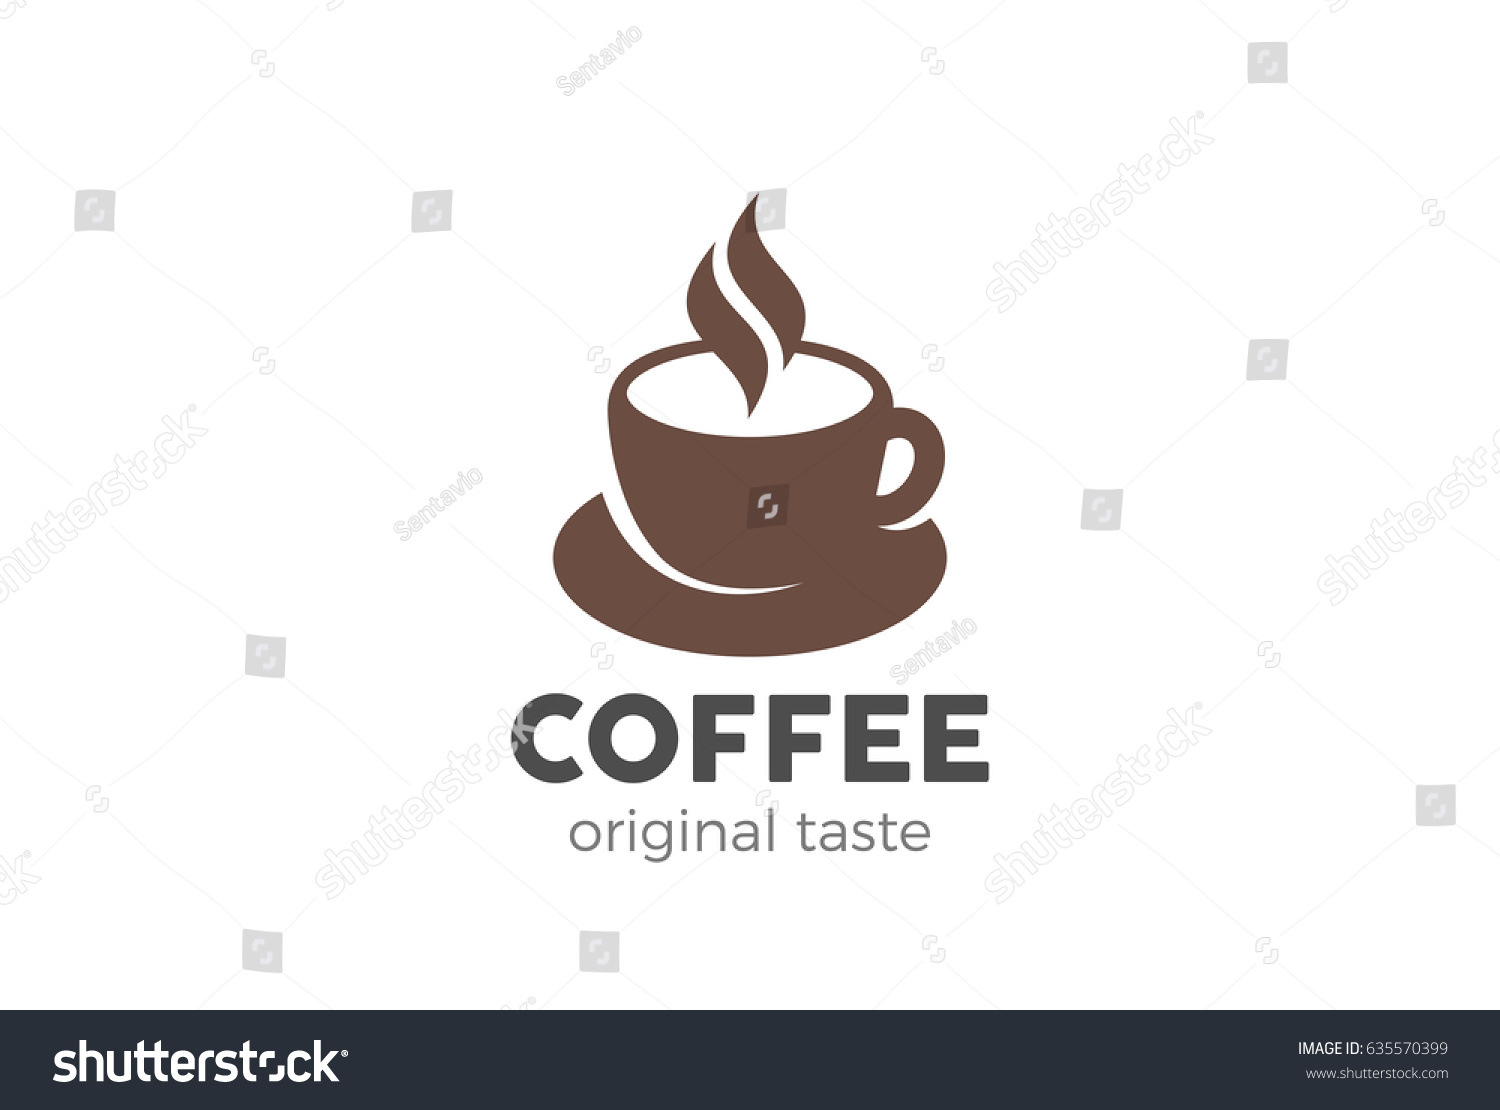 coffee cup logo template - photo #18